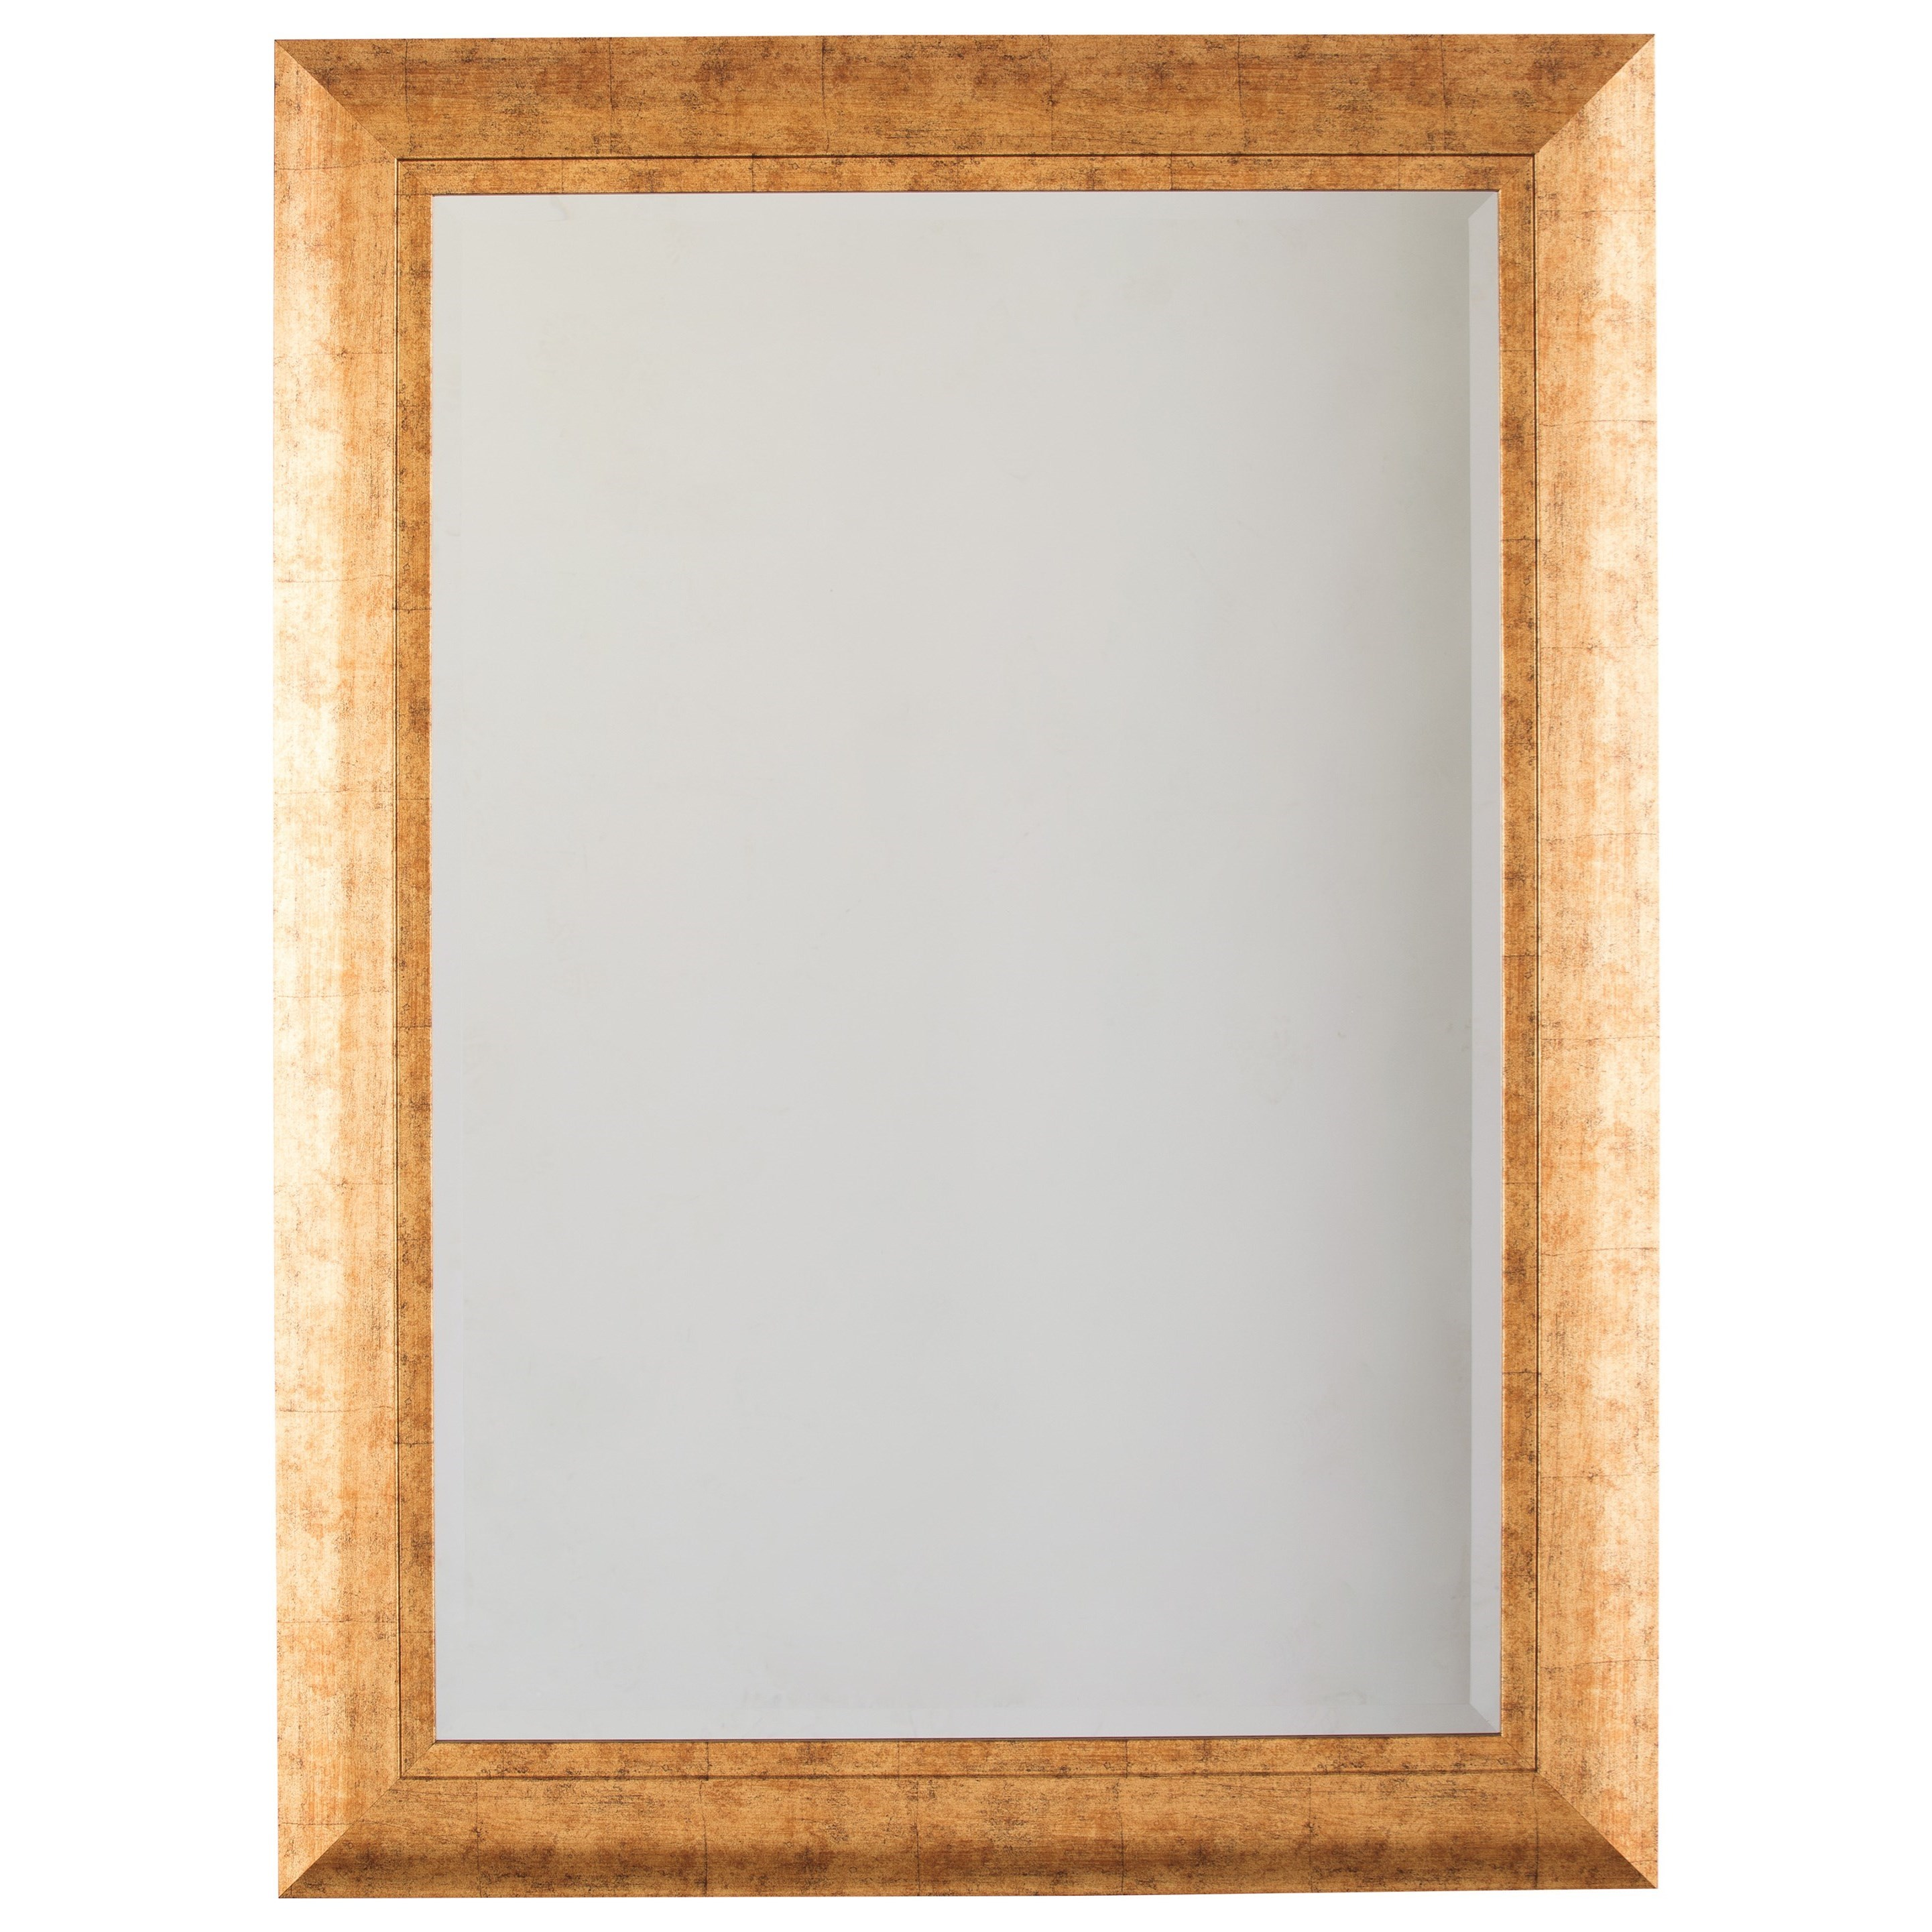 Signature Design by Ashley Accent Mirrors Dulce Gold Finish Accent Mirror - Item Number: A8010084